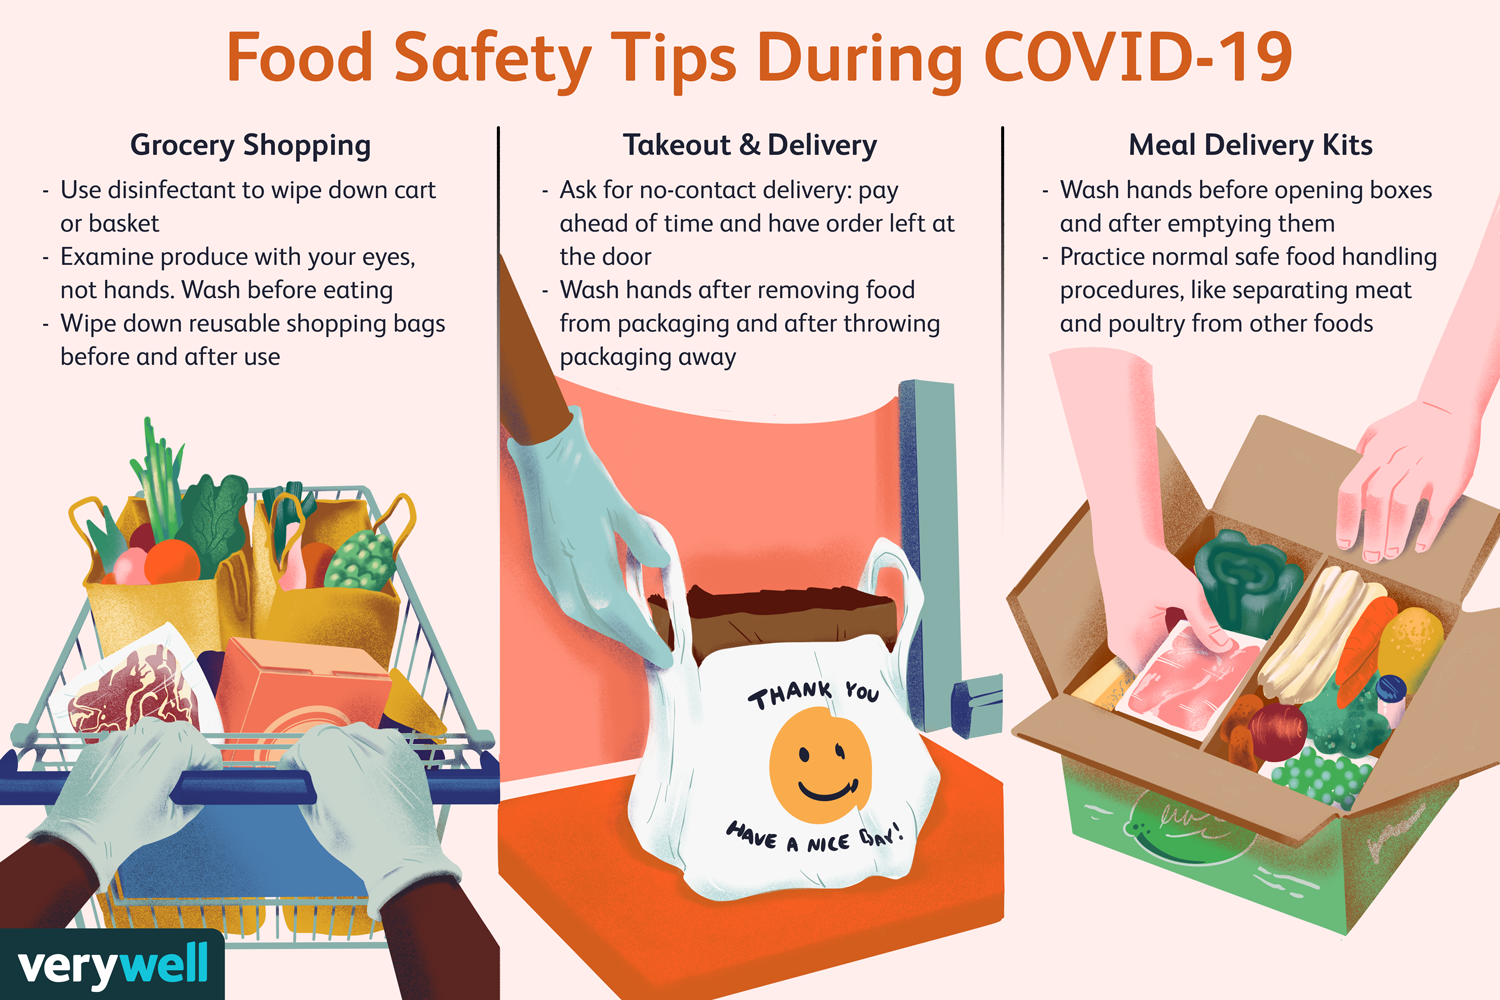 How Do I Handle Food Safety during COVID-19?